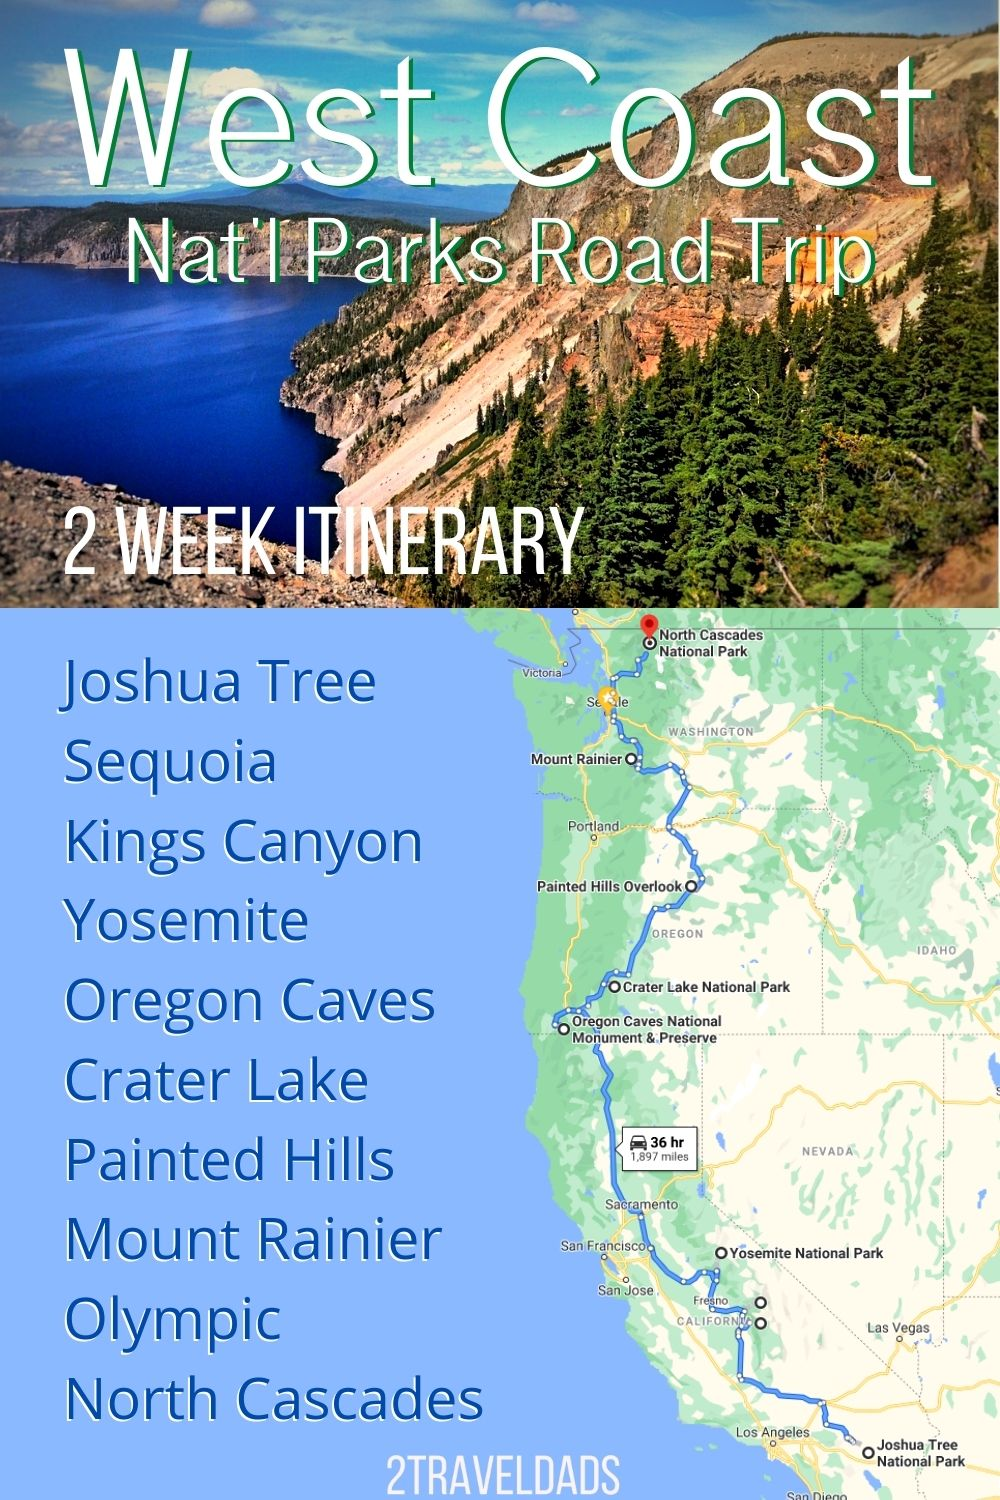 Perfect West Coast National Parks road trip plan, from Joshua Tree to Olympic National Park. Stops in the Sierras, Central Oregon, and the best of Washington State's mountains.